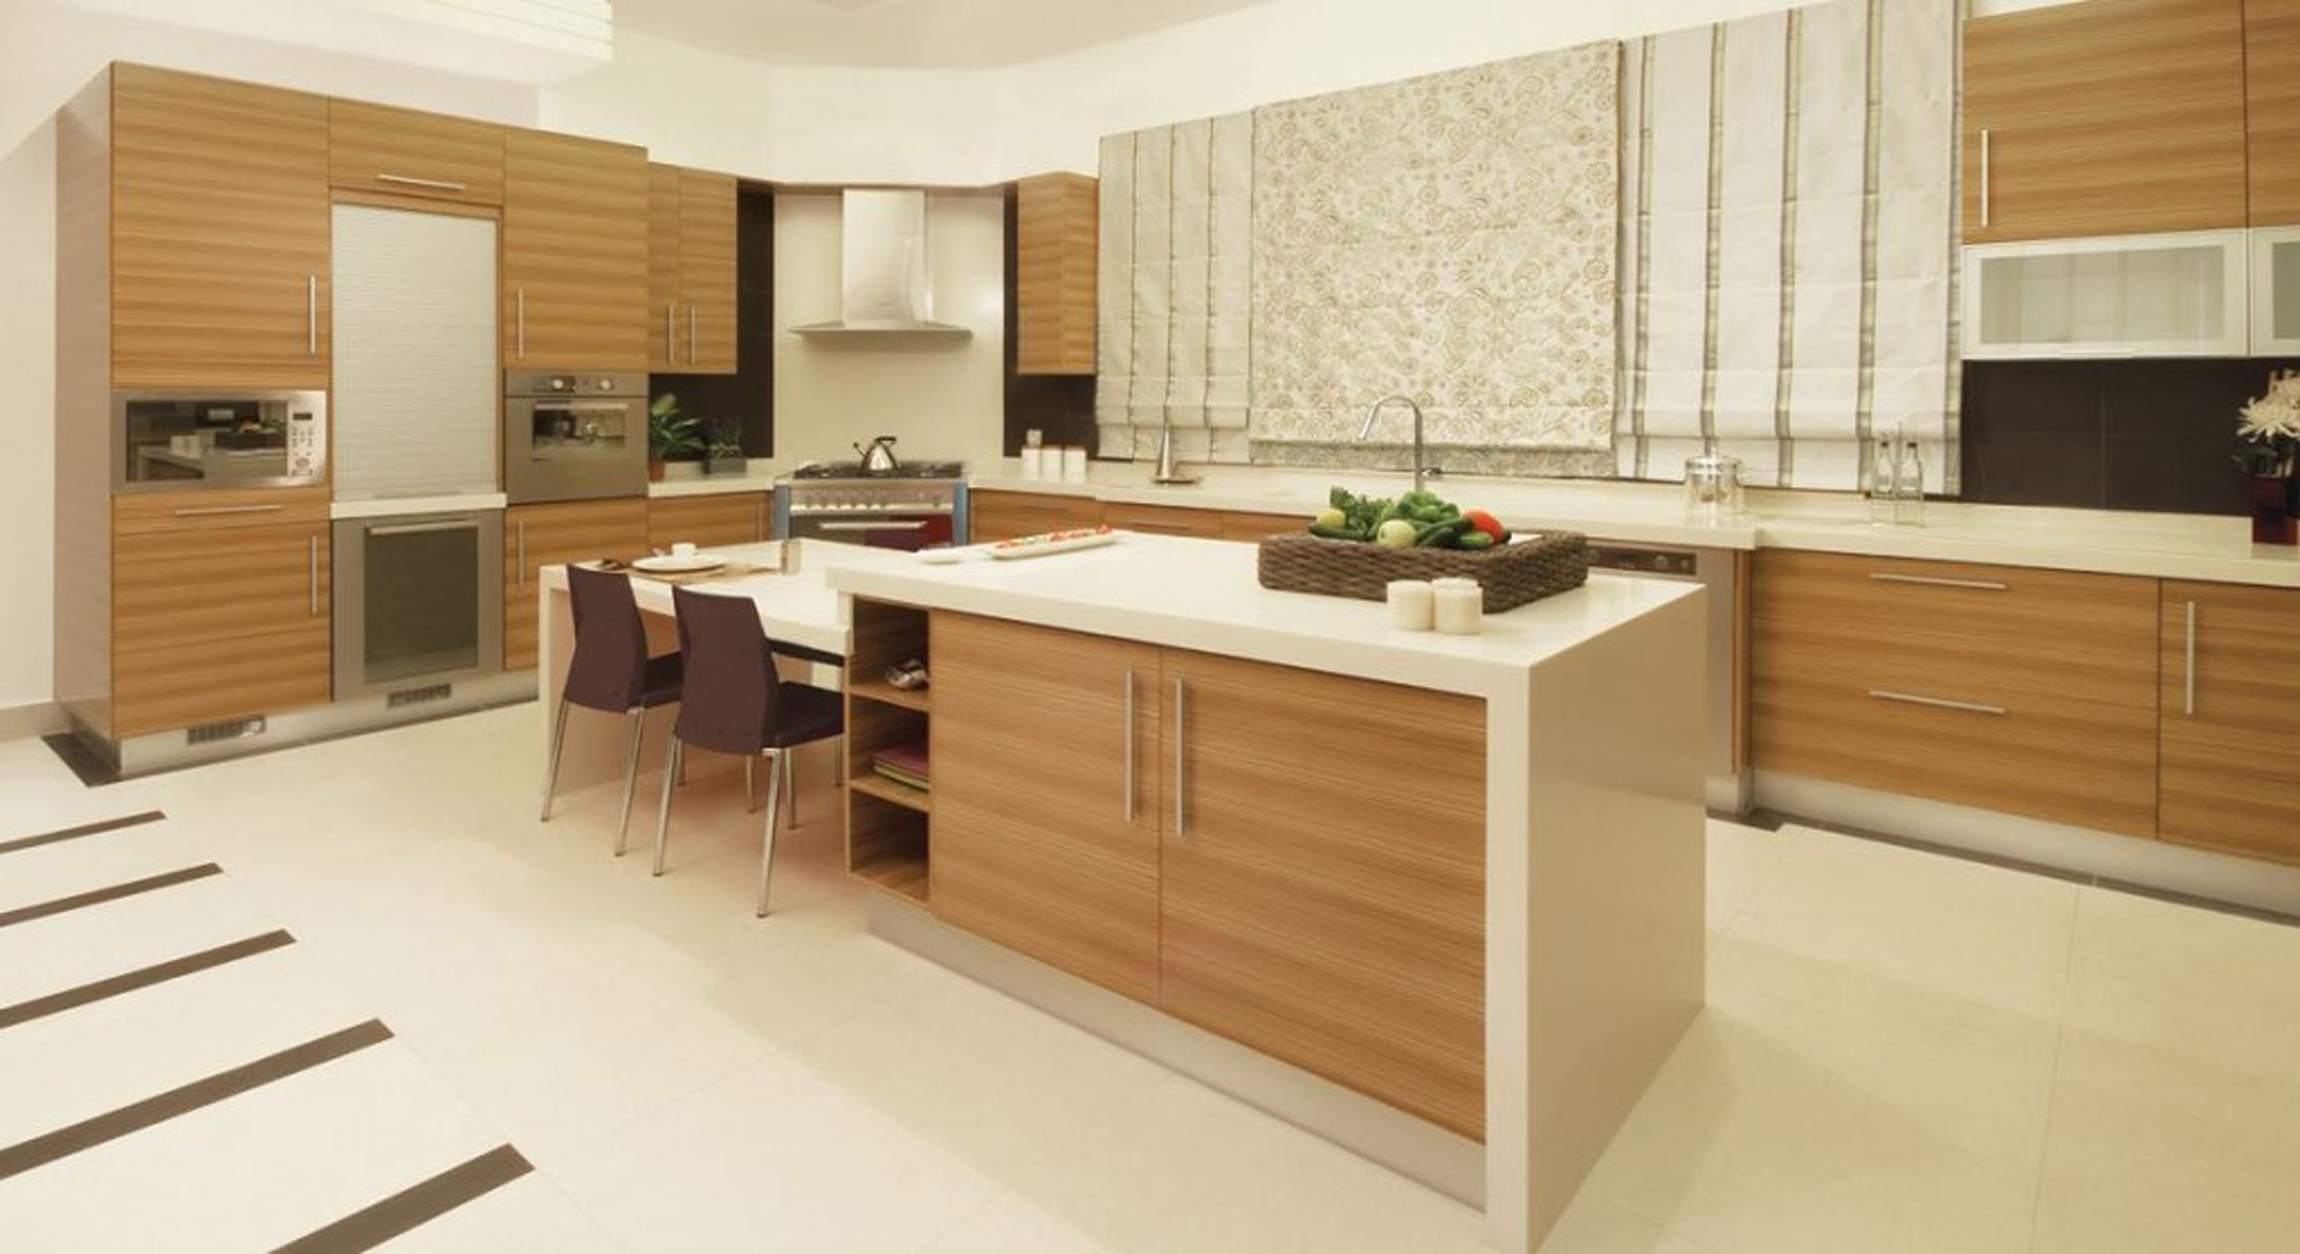 Kitchen Design With Brown Cabinets Cupboards With Sweet Concept (View 3 of 31)